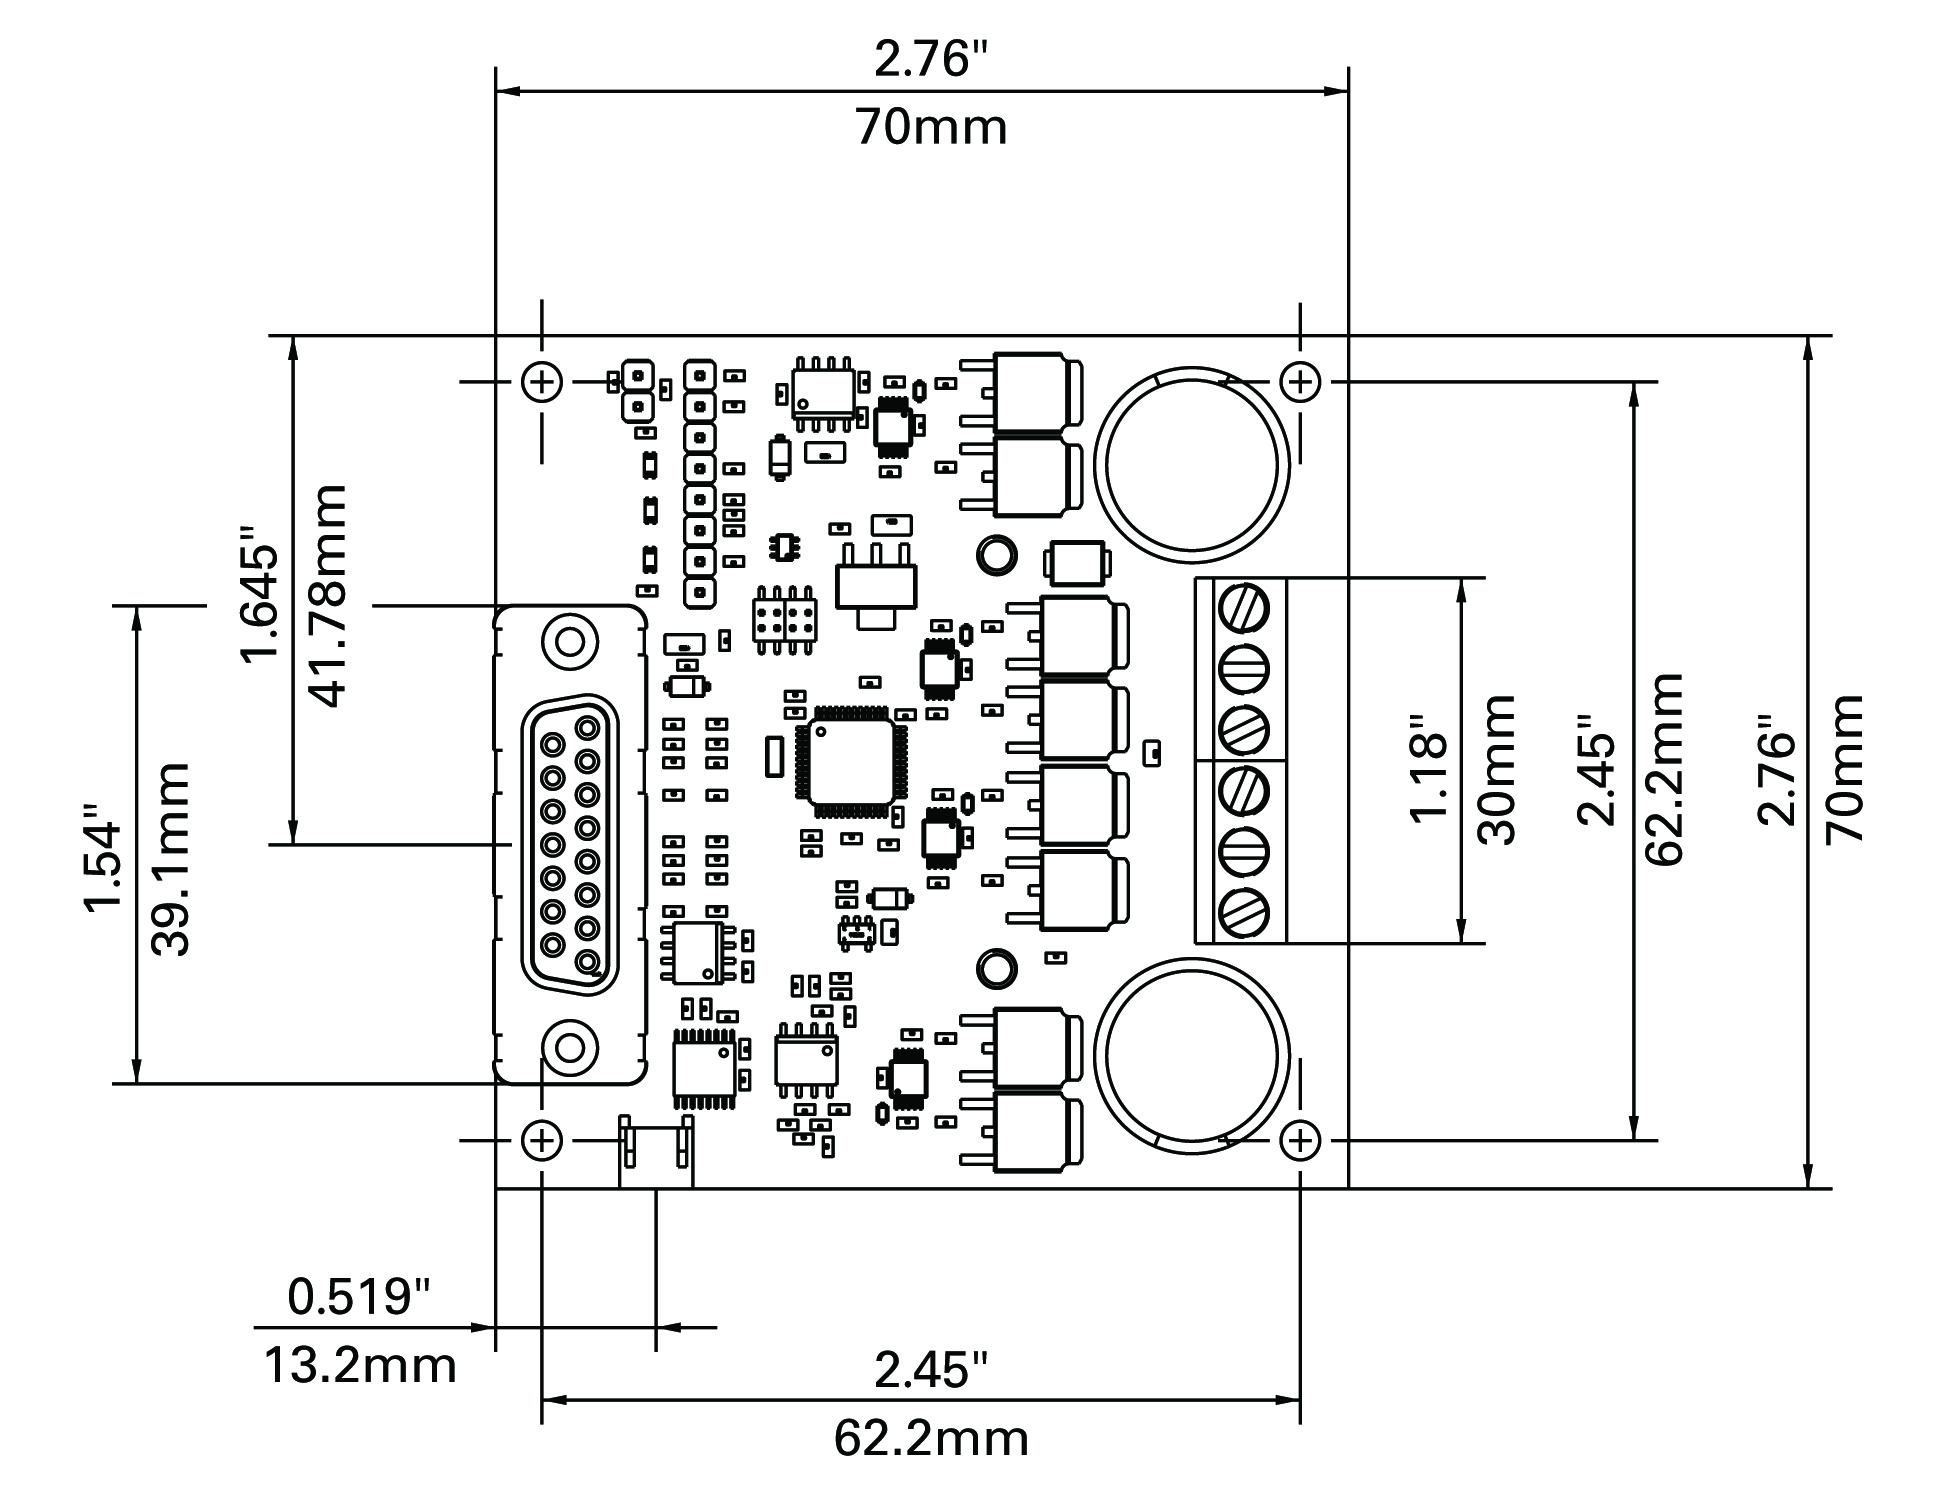 hight resolution of brushed dc motor controller